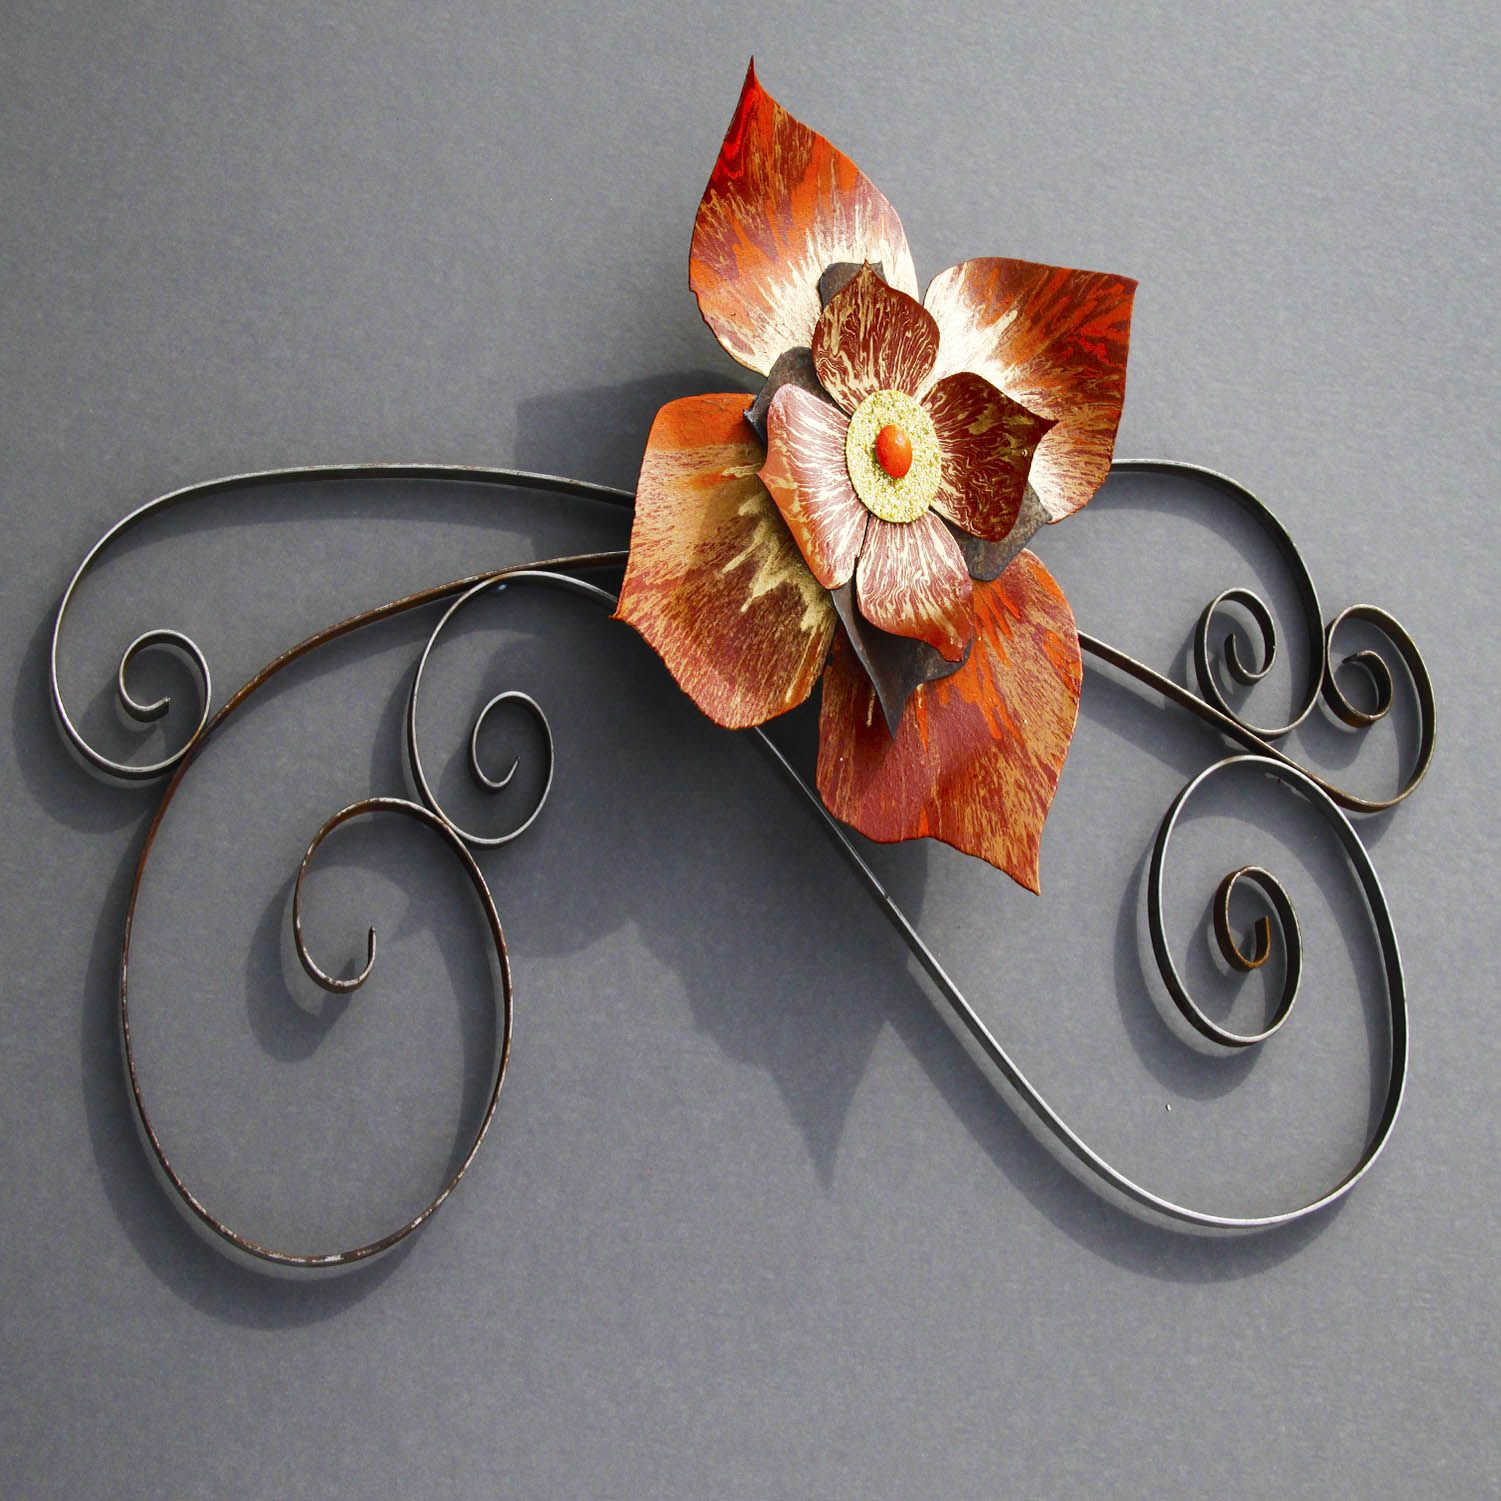 Metal garden art flower by Richard Arfsten